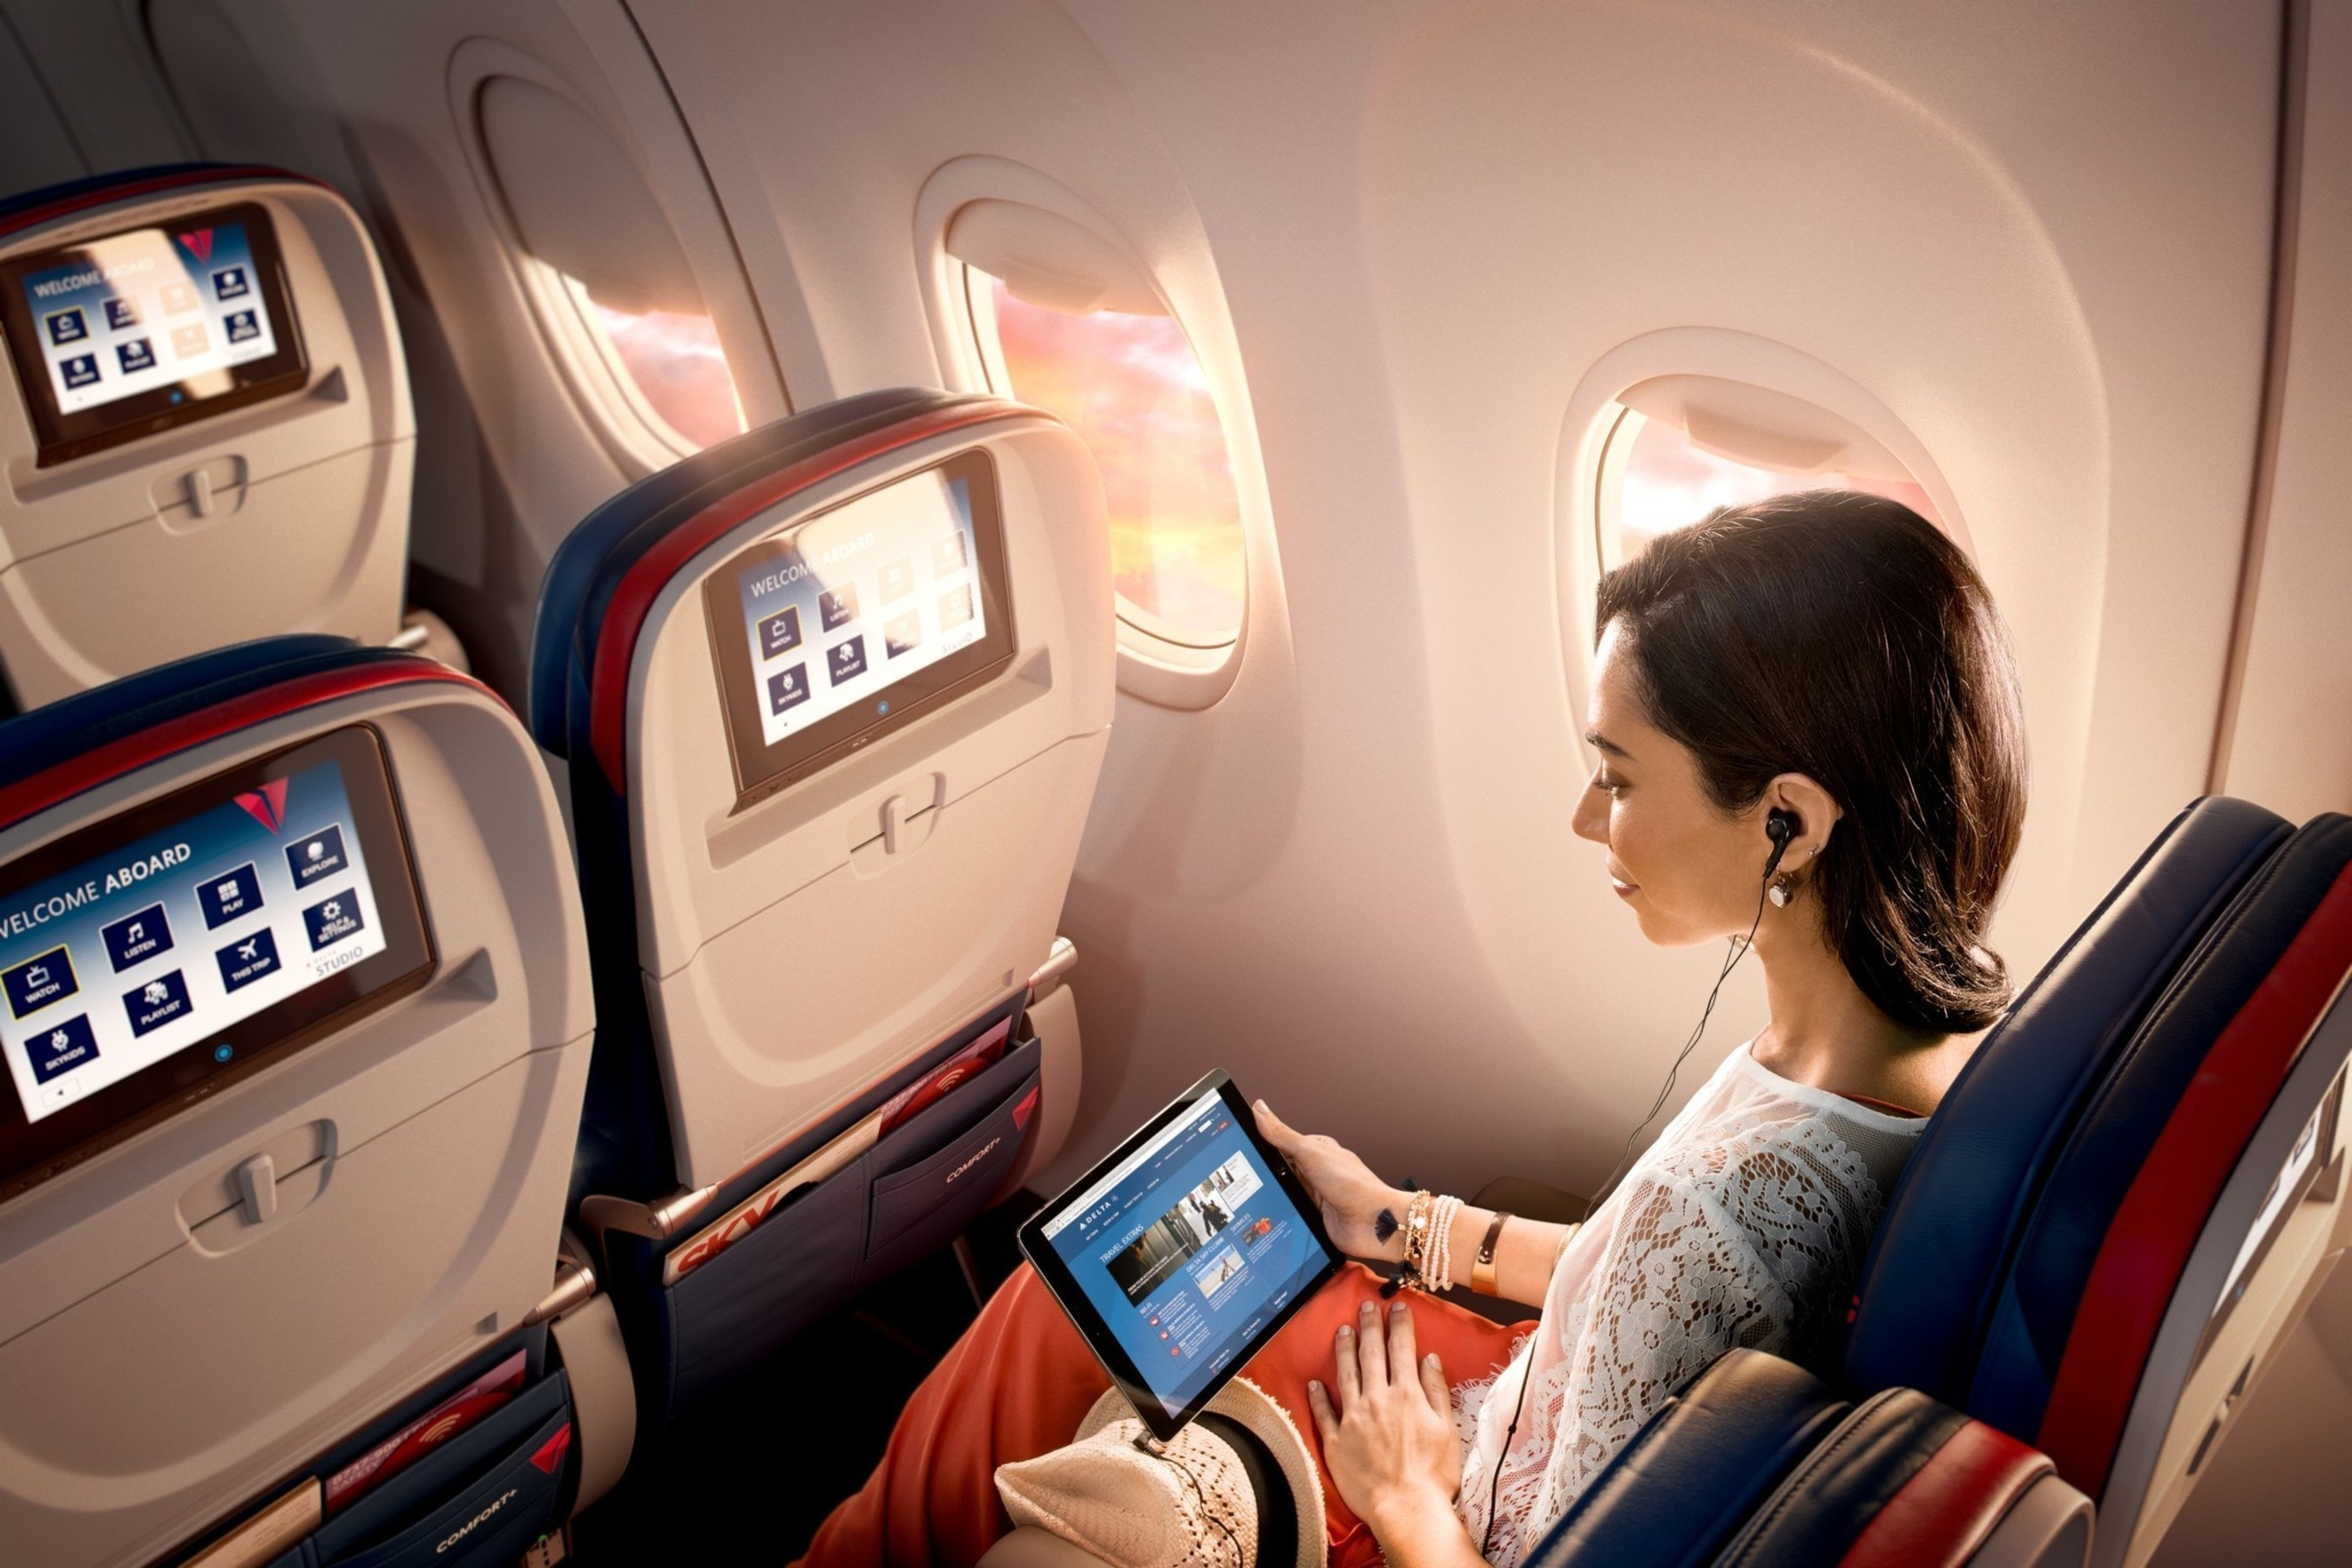 Delta Becomes Only U.S. Airline to Offer All In-Flight Entertainment For Free